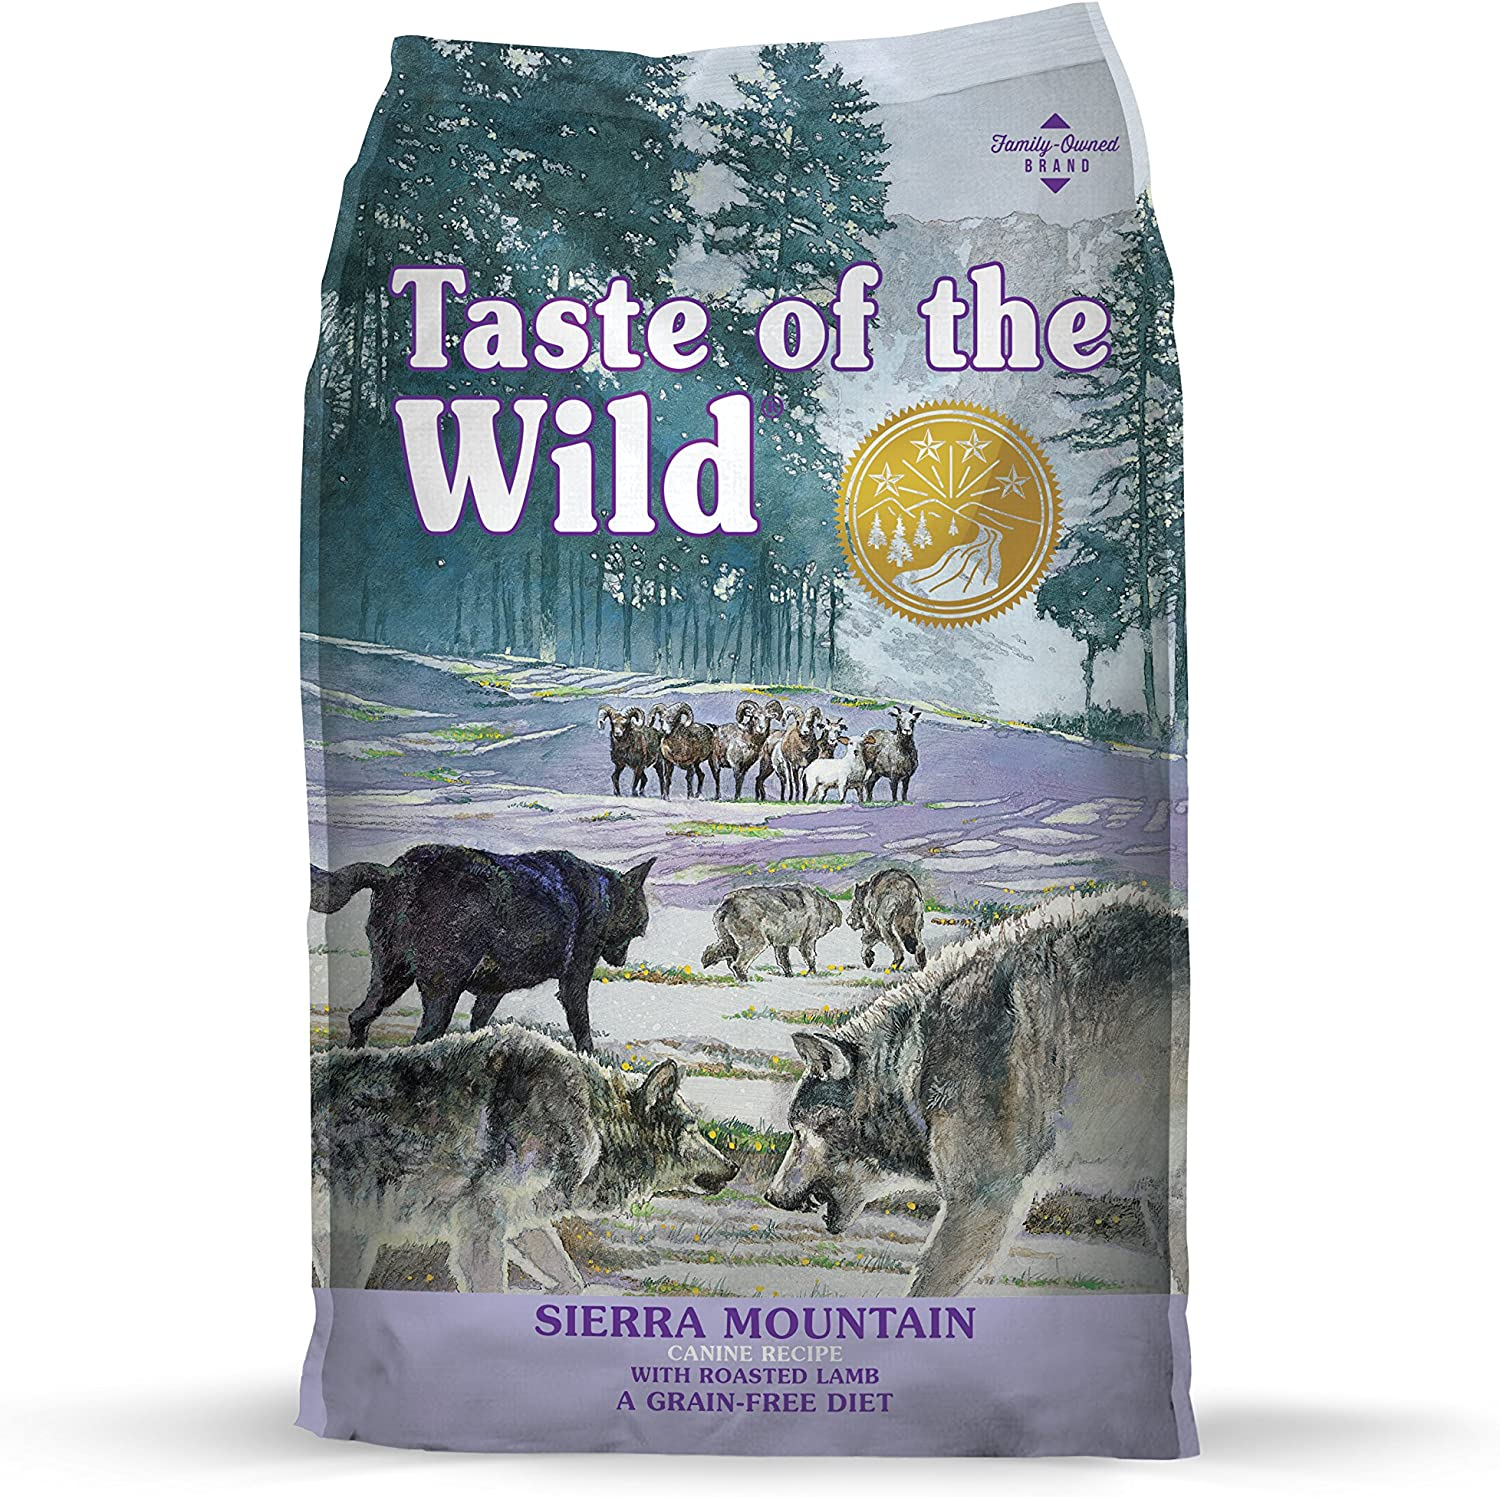 5. Taste of the Wild Sierra Mountain Grain-Free Dry Dog Food